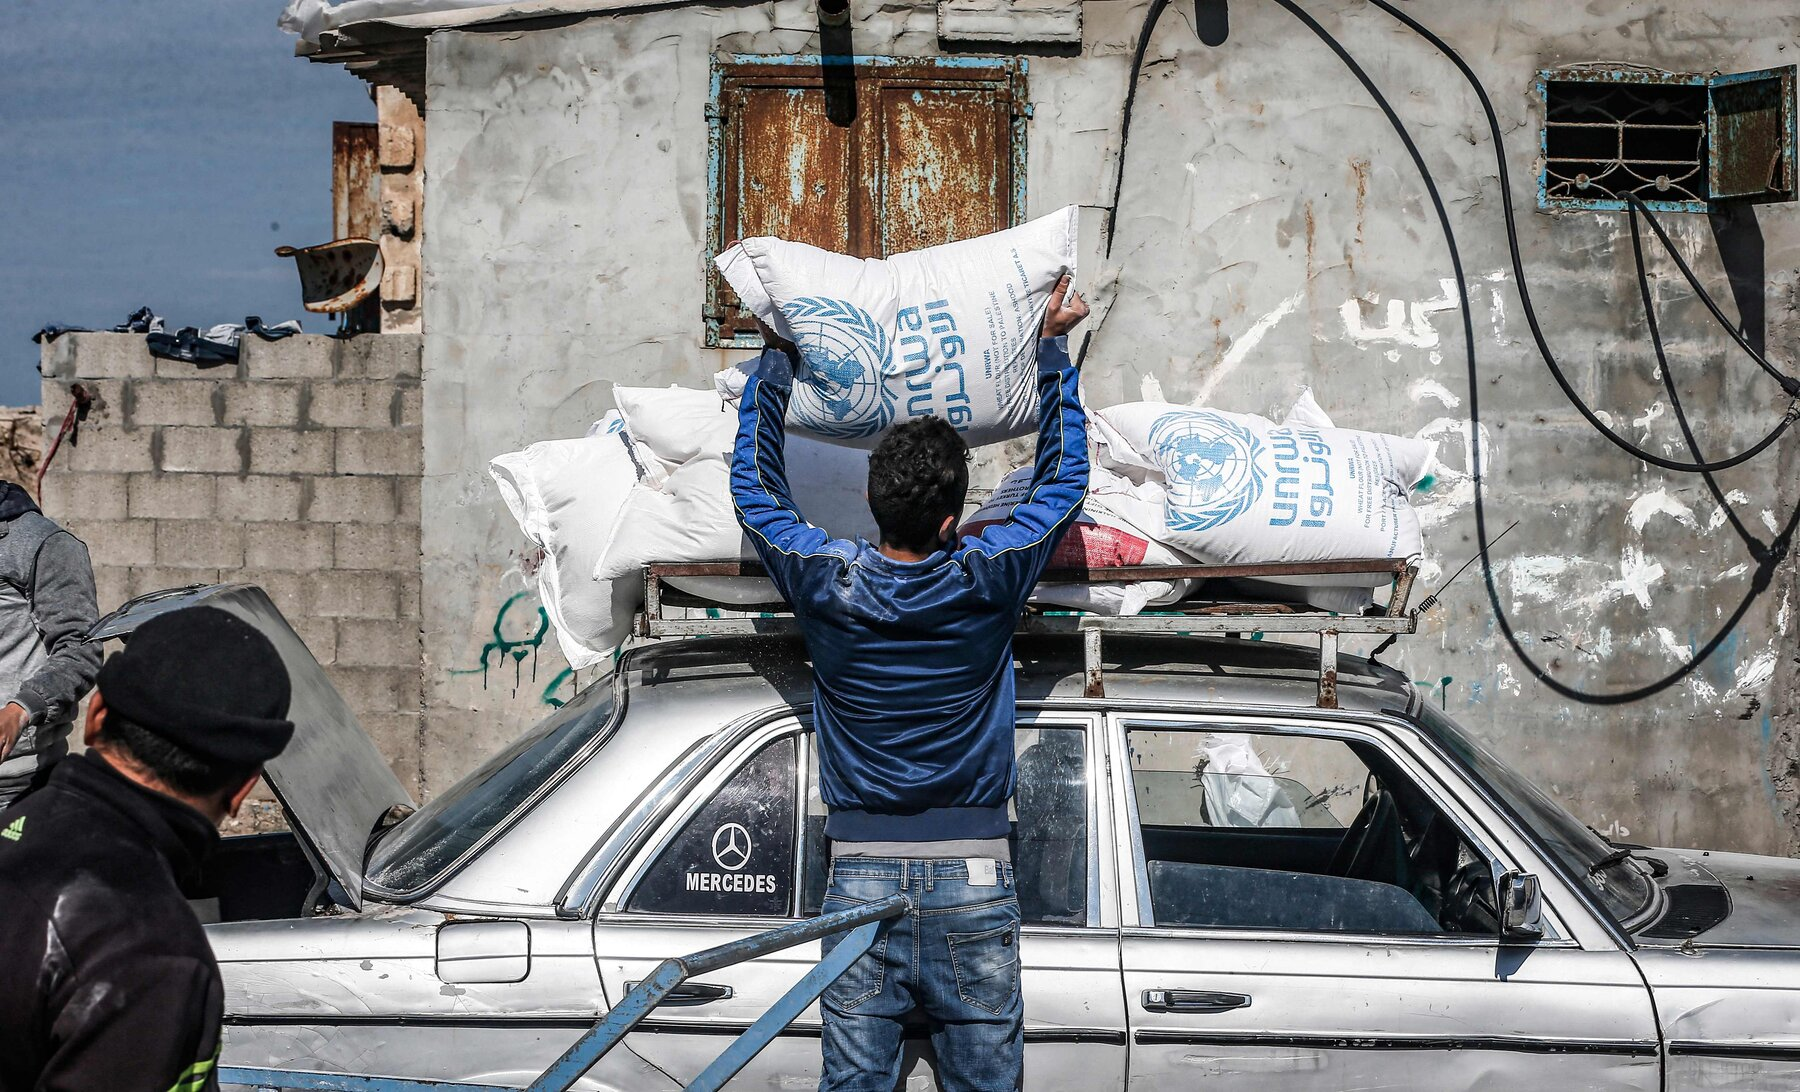 Israel Objects Biden Admin Move On Resuming UNRWA Aid to Palestinian Refugees